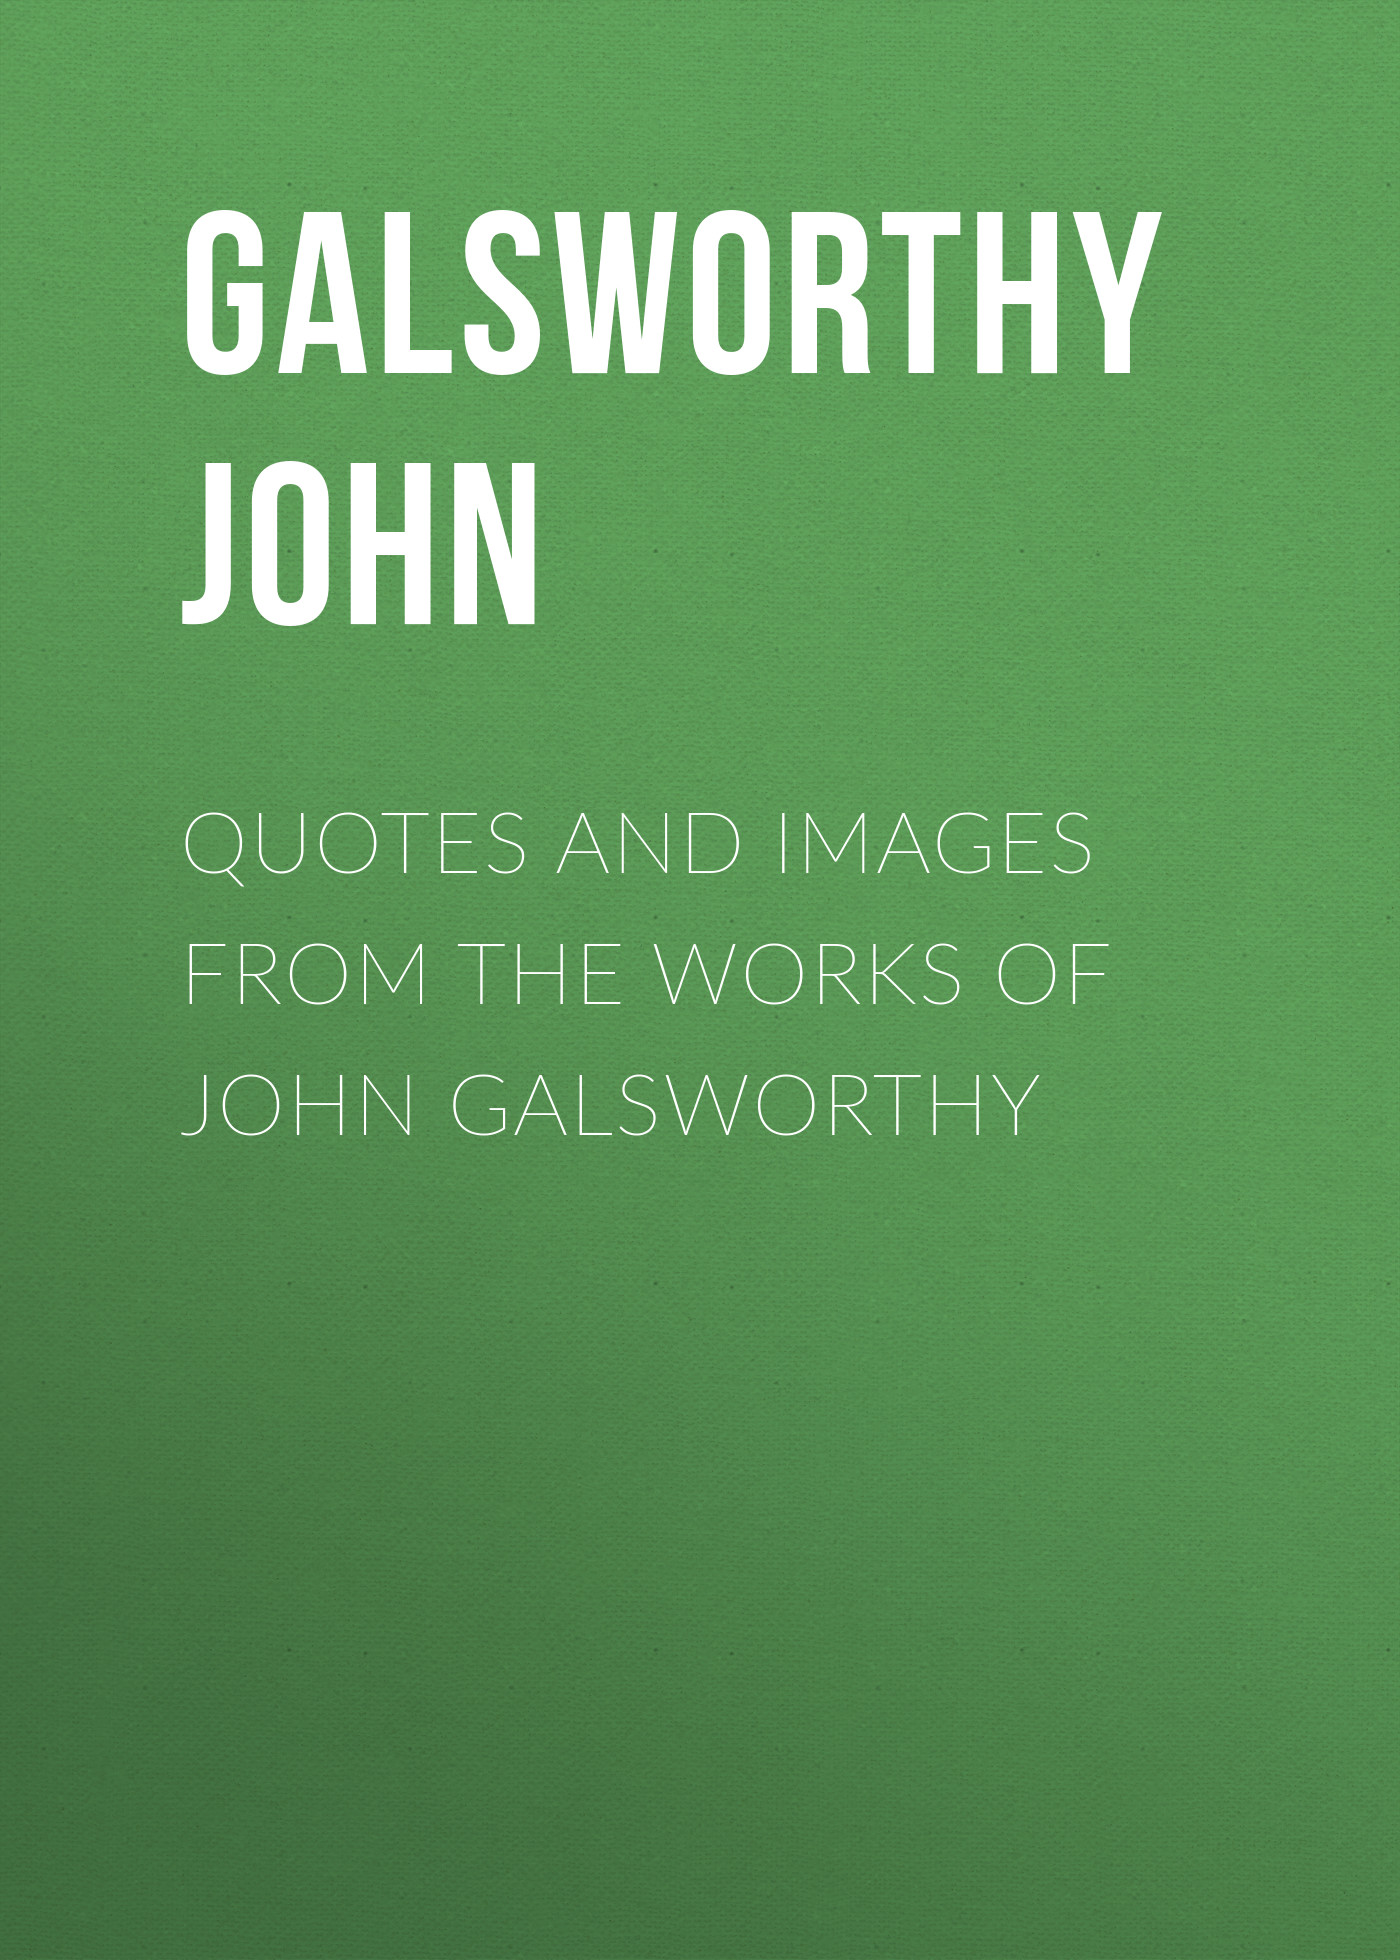 Galsworthy John Quotes and Images From the Works of John Galsworthy galsworthy john quotes and images from the works of john galsworthy